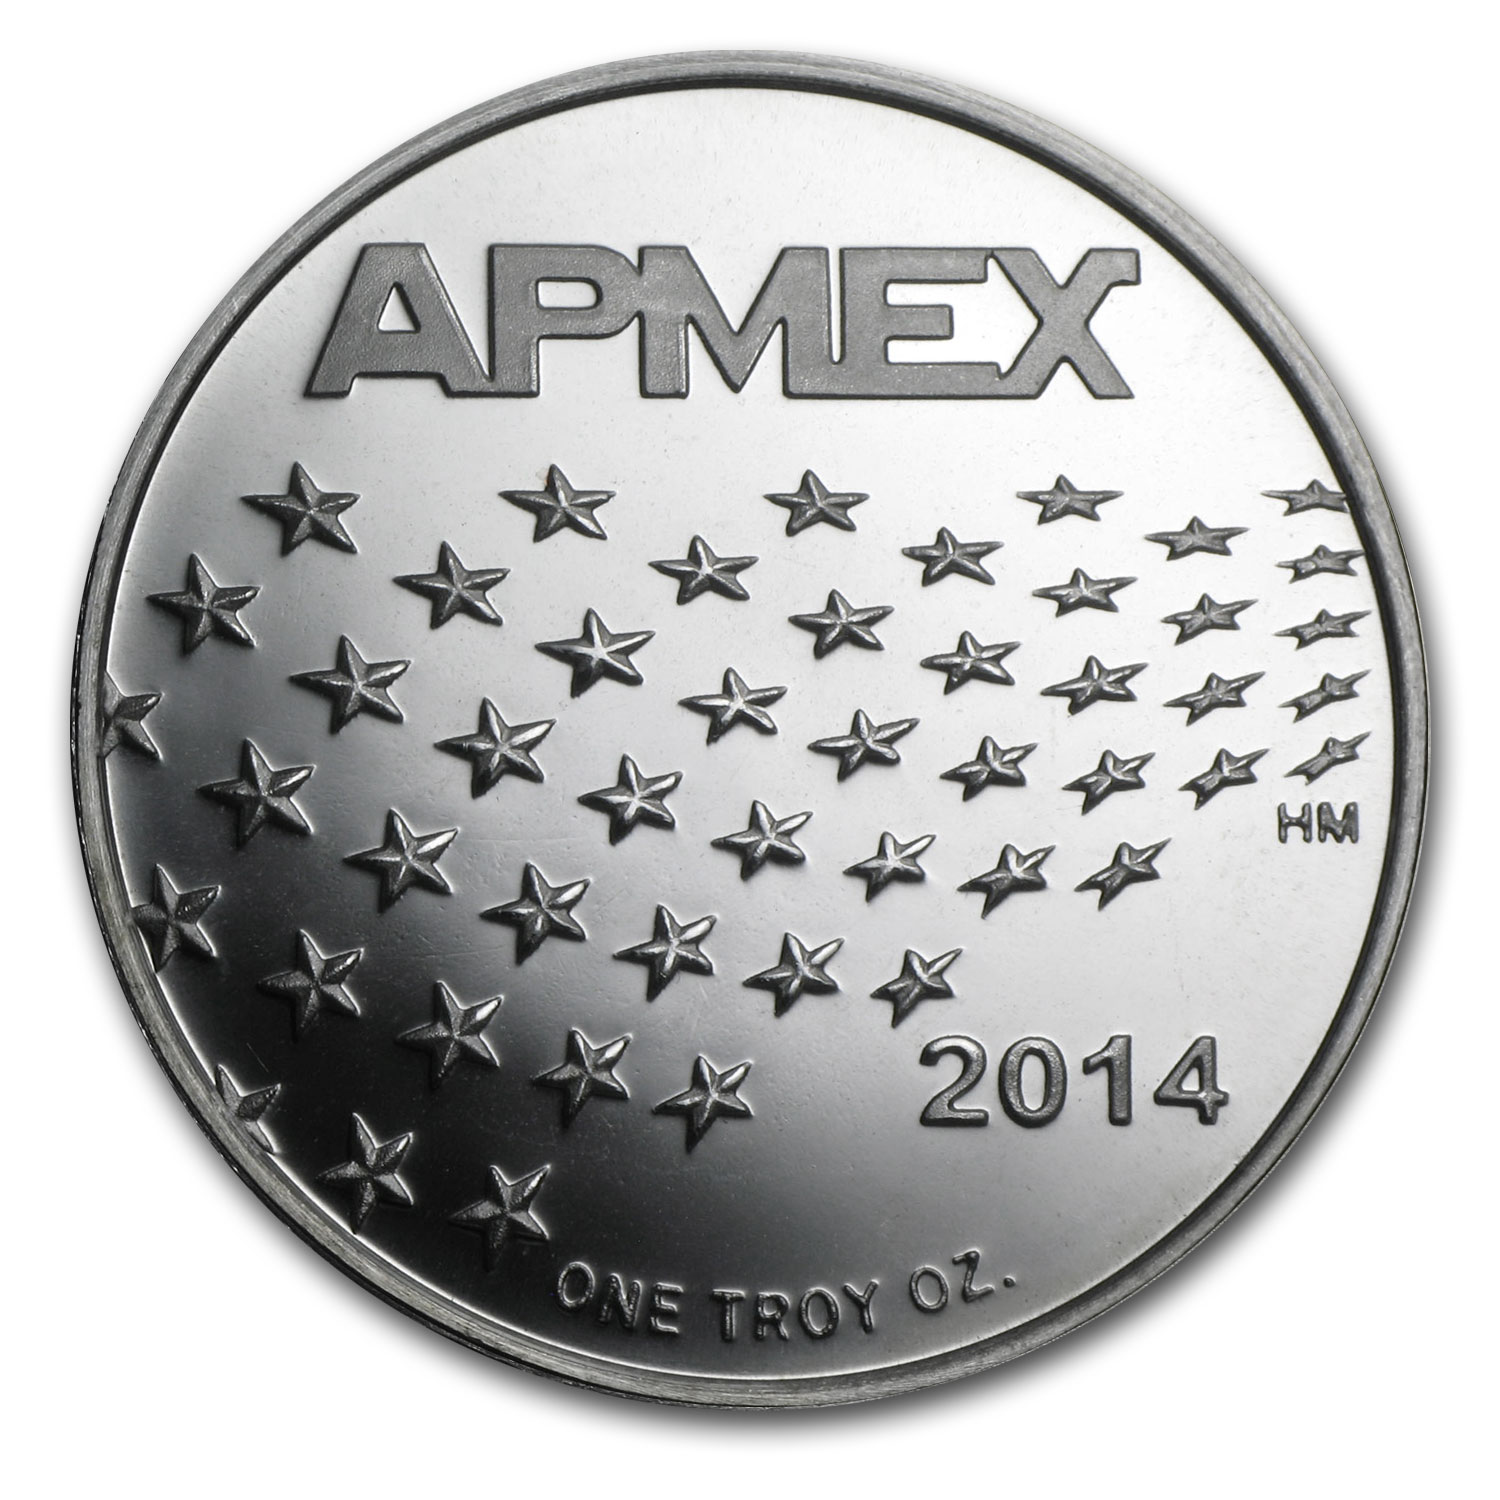 1 oz Silver Round - APMEX (2014 Star and Stripes)